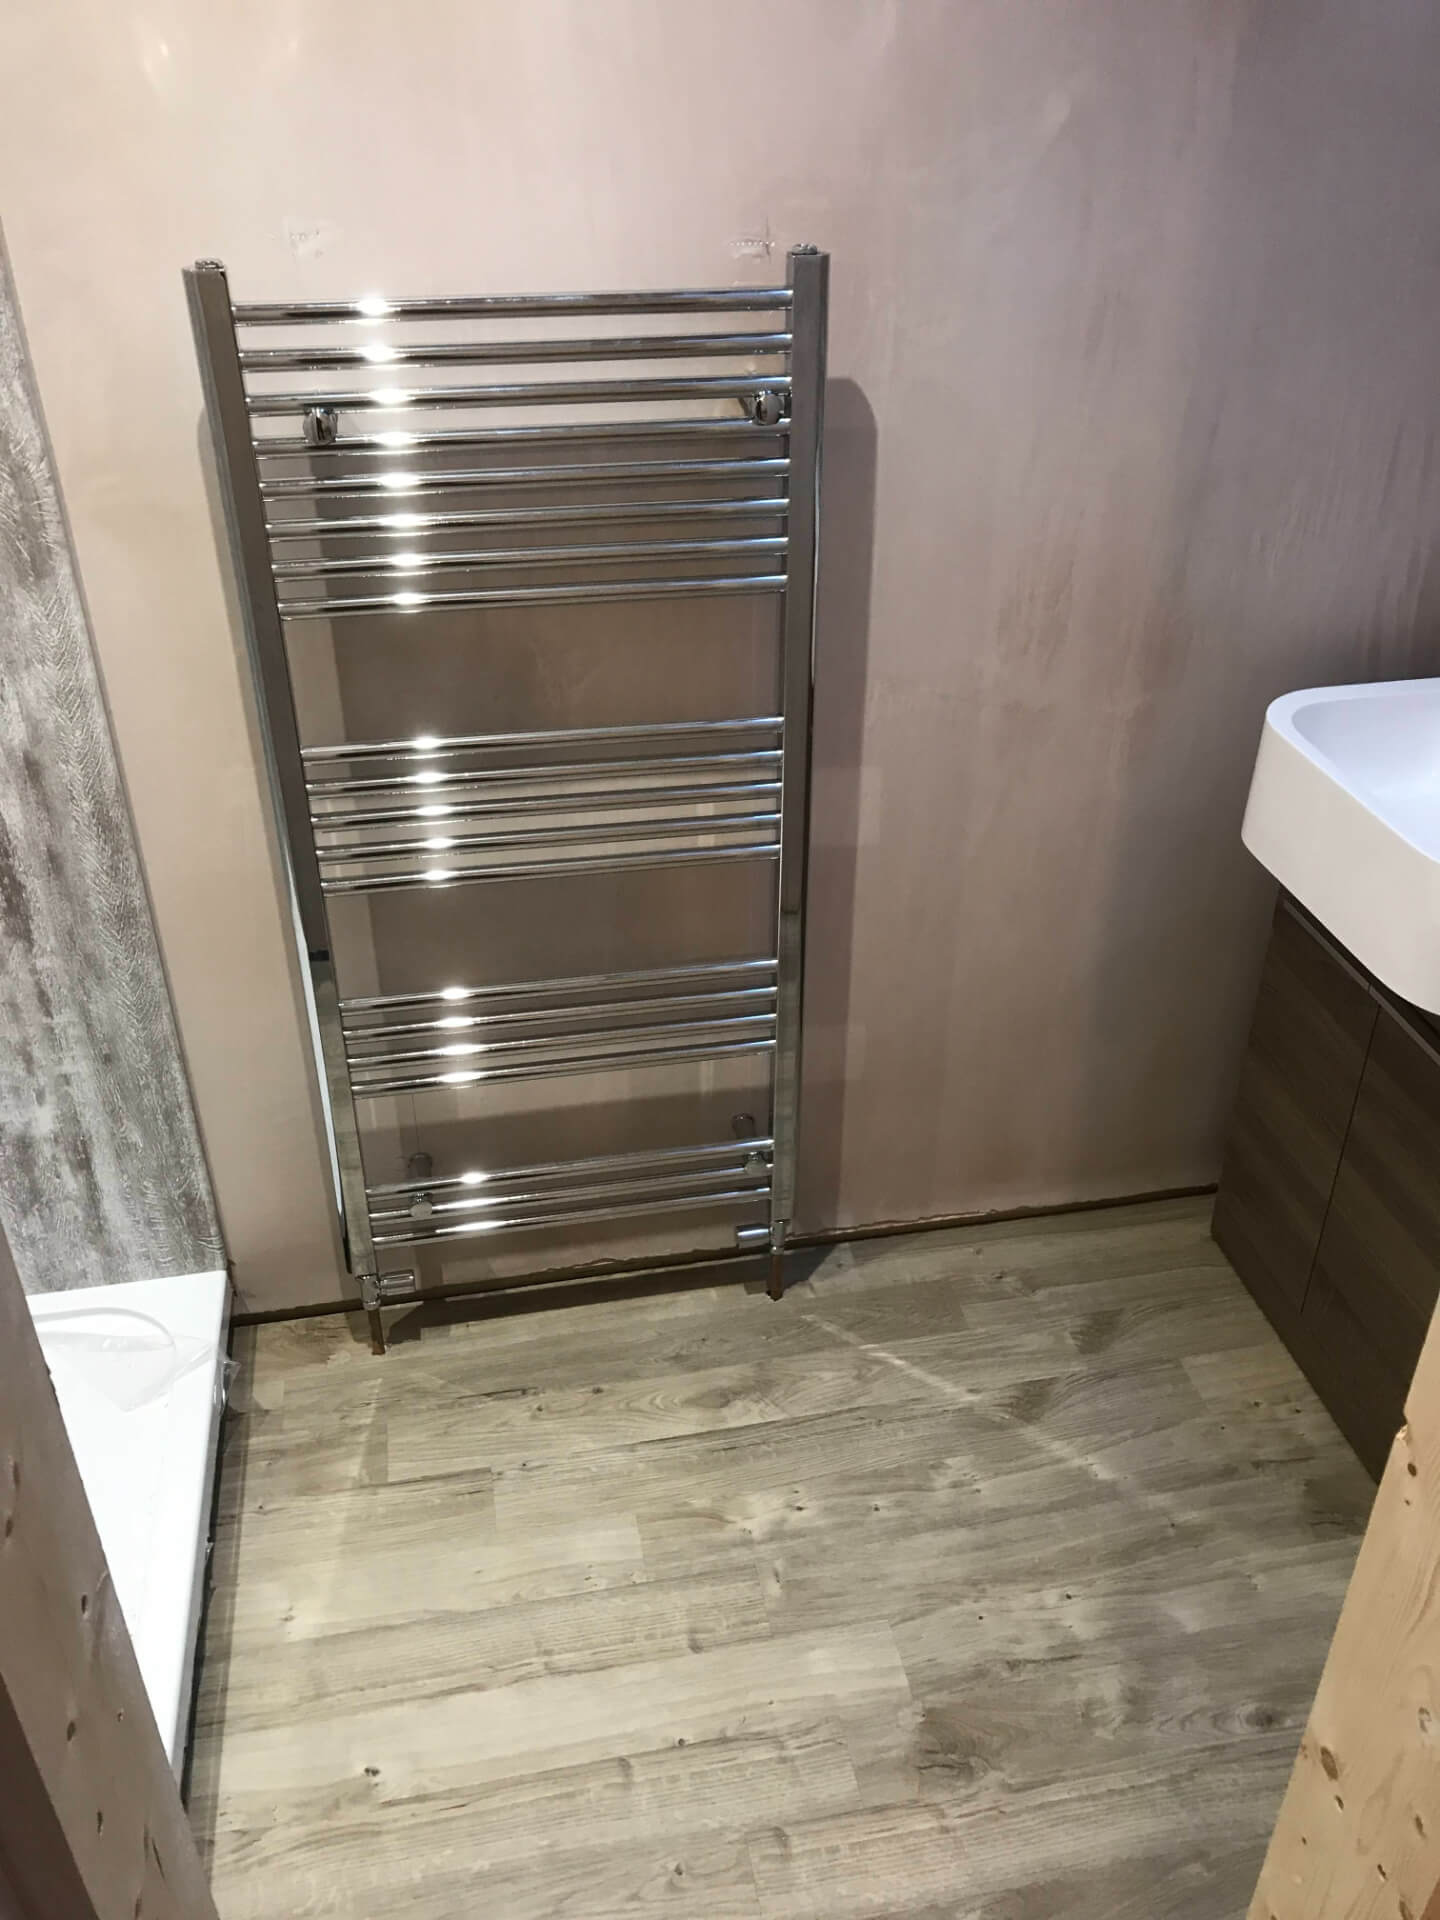 New Silver Bathroom Radiator